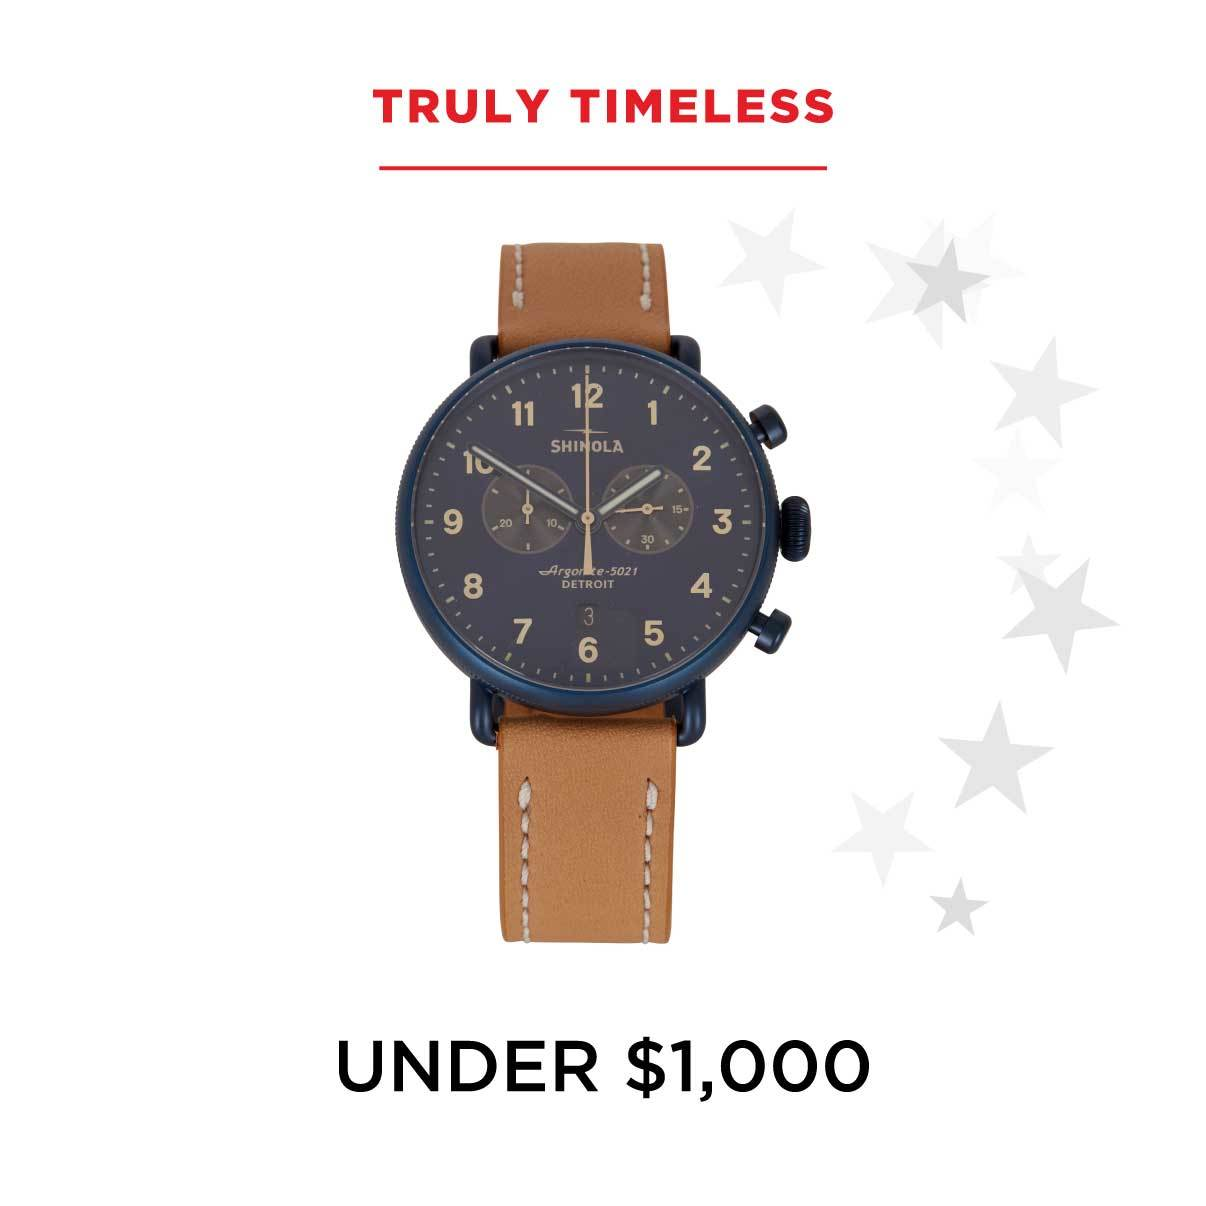 Gifts Under $1,000 for Him